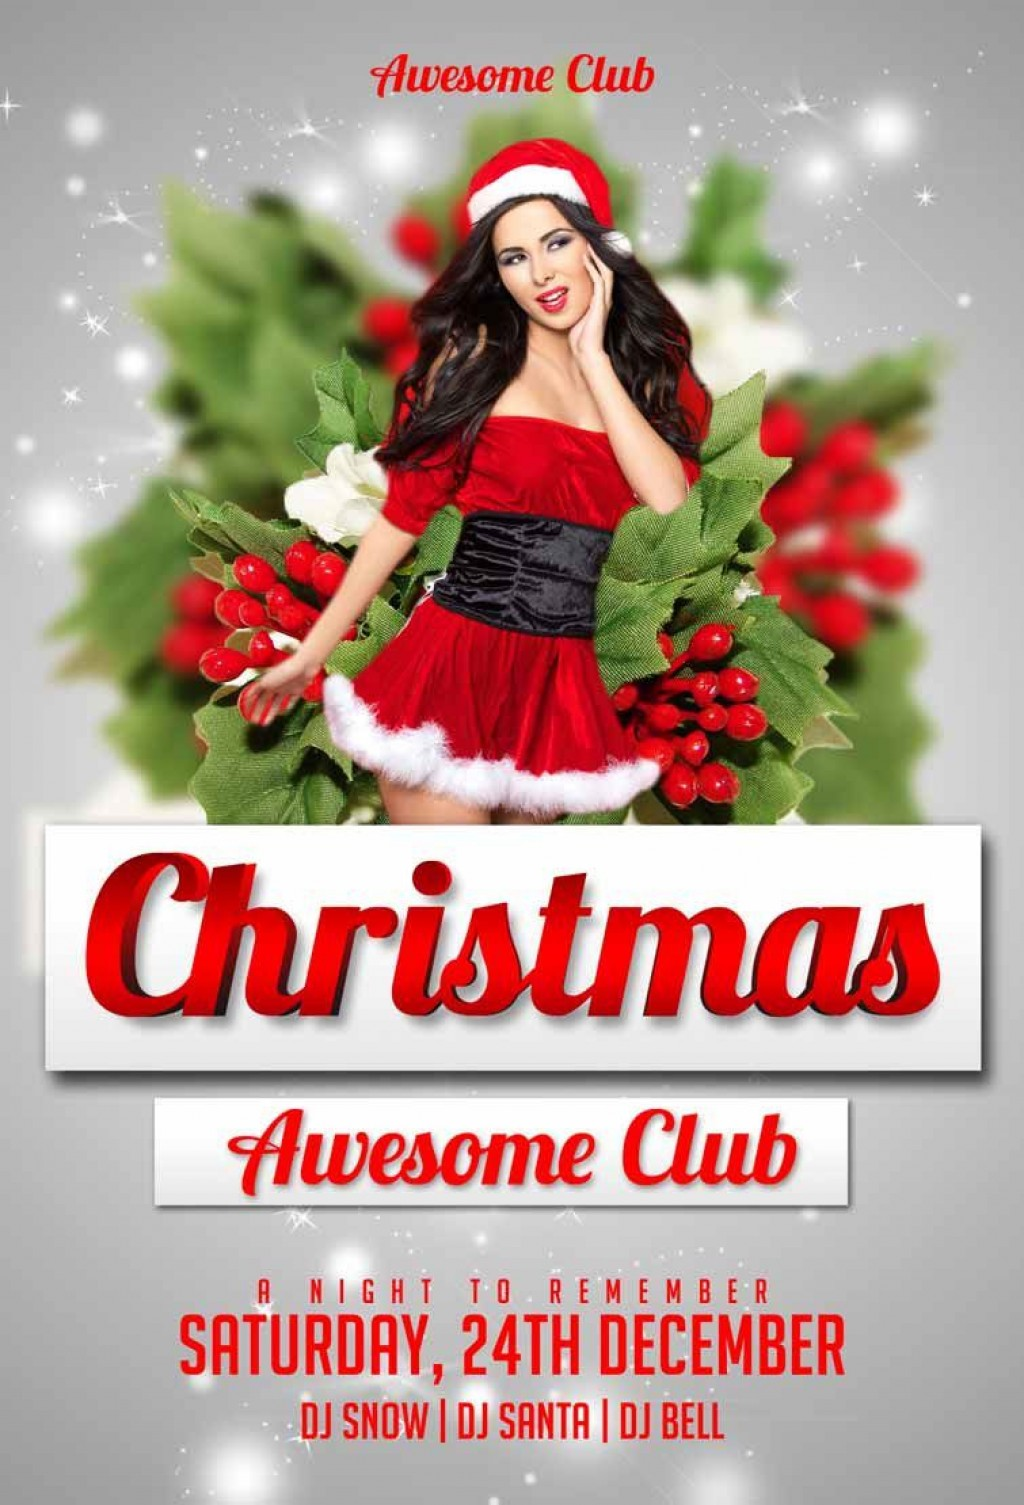 007 Incredible Christma Flyer Template Free Highest Quality  Party Invitation Psd DownloadLarge